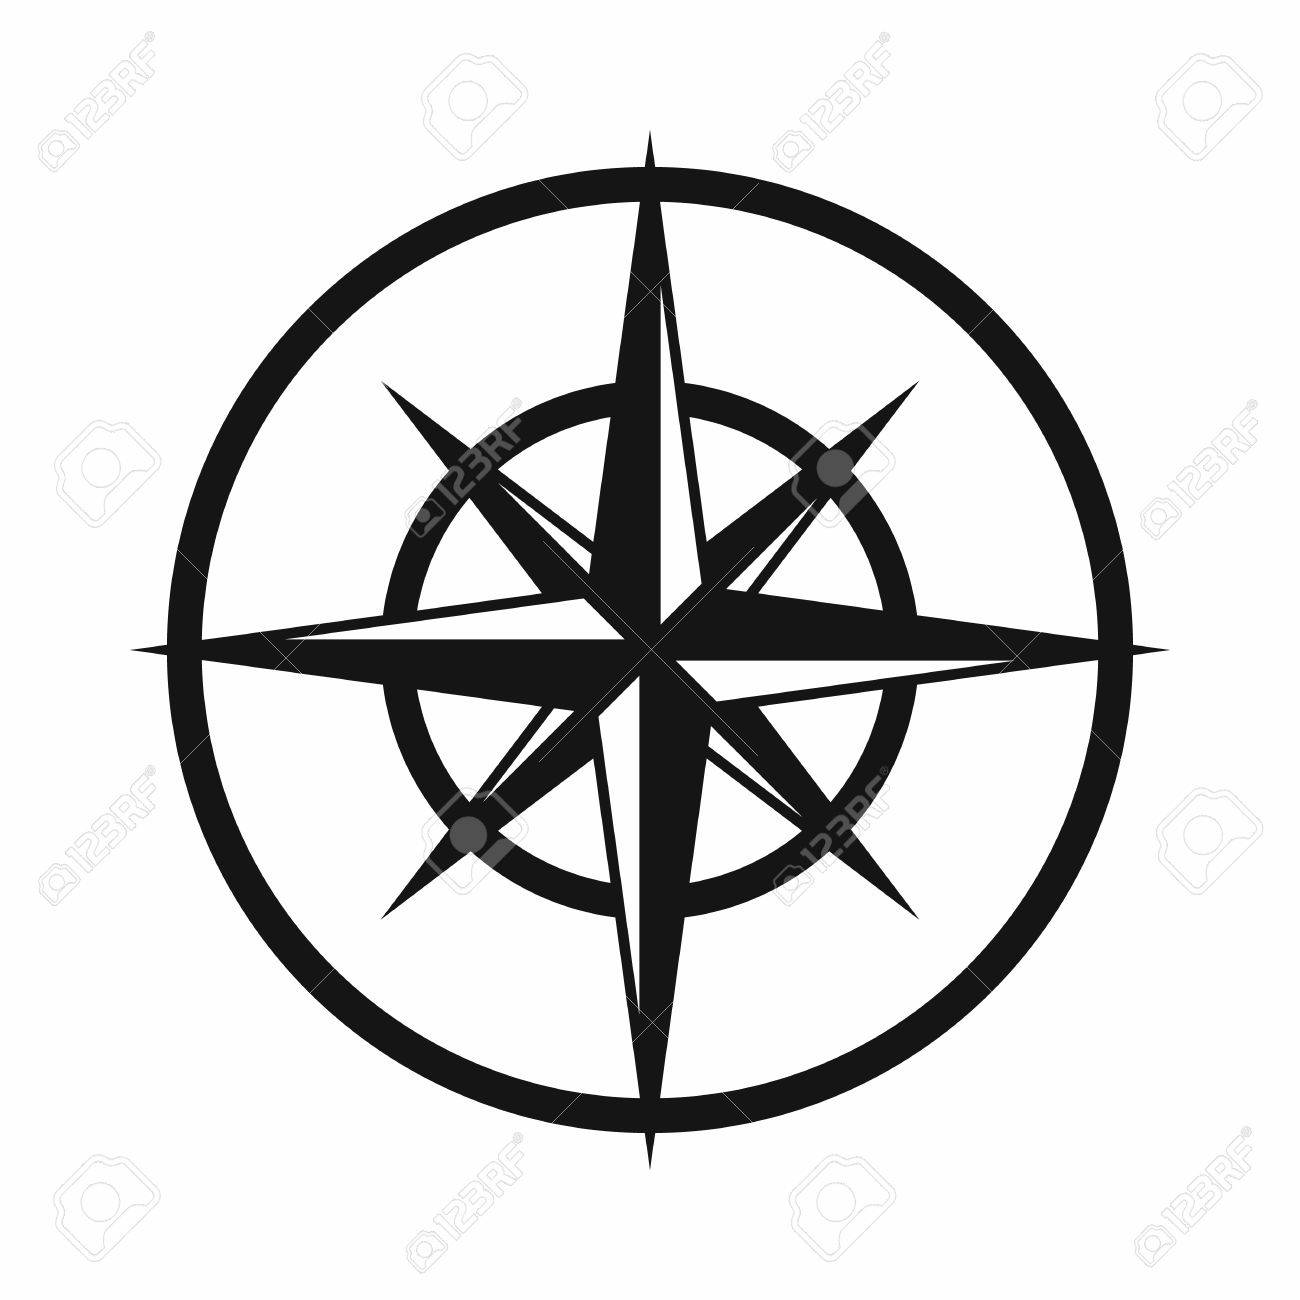 Sign Of Compass To Determine Cardinal Directions Icon In Simple